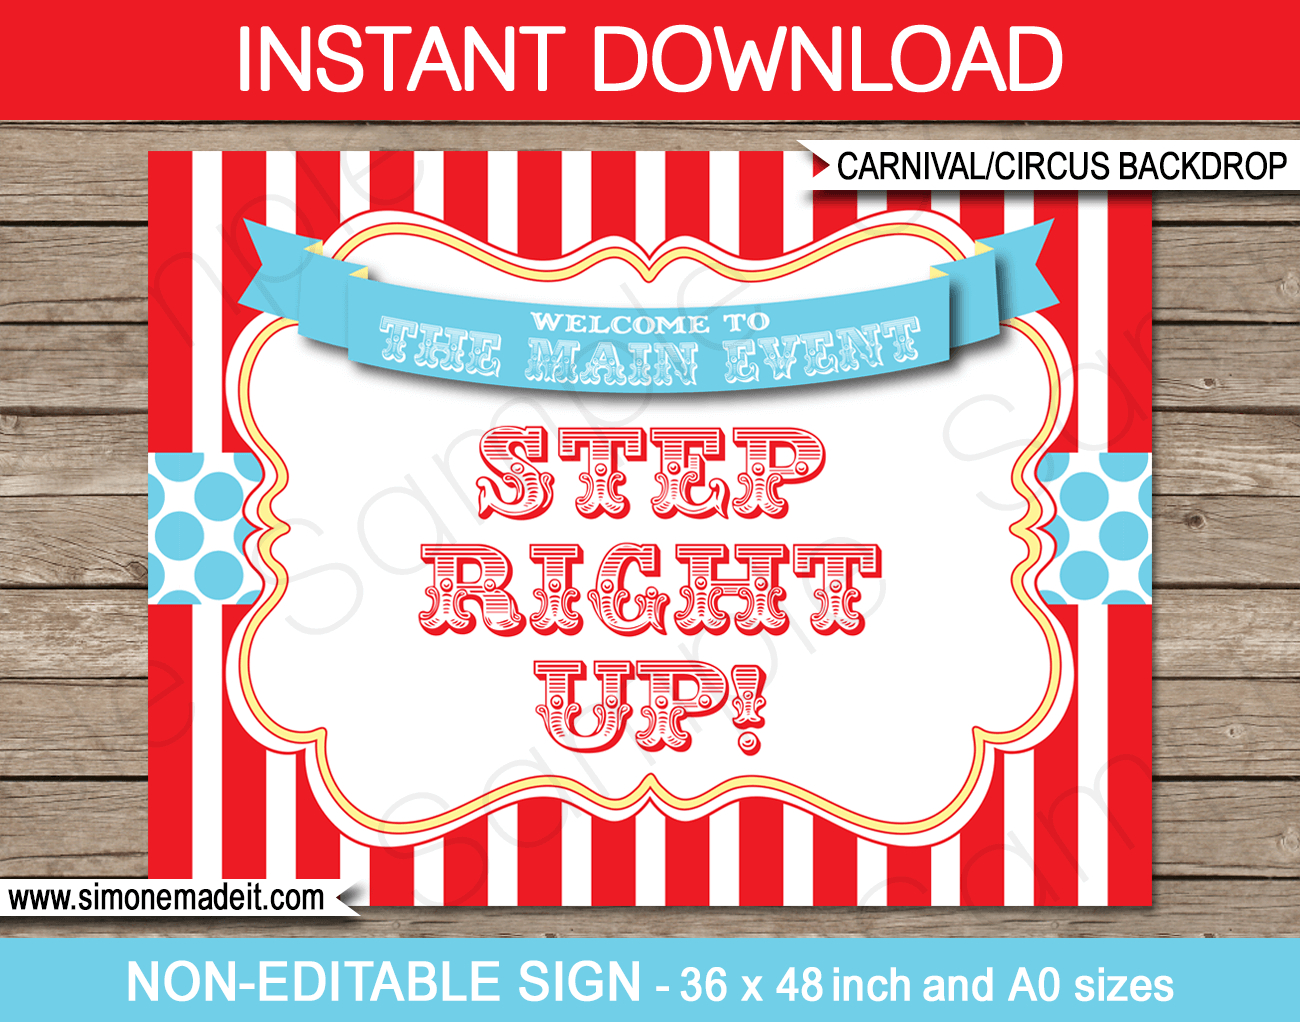 Printable Circus Backdrop Sign | Carnival Party Decorations - Free Printable Carnival Decorations